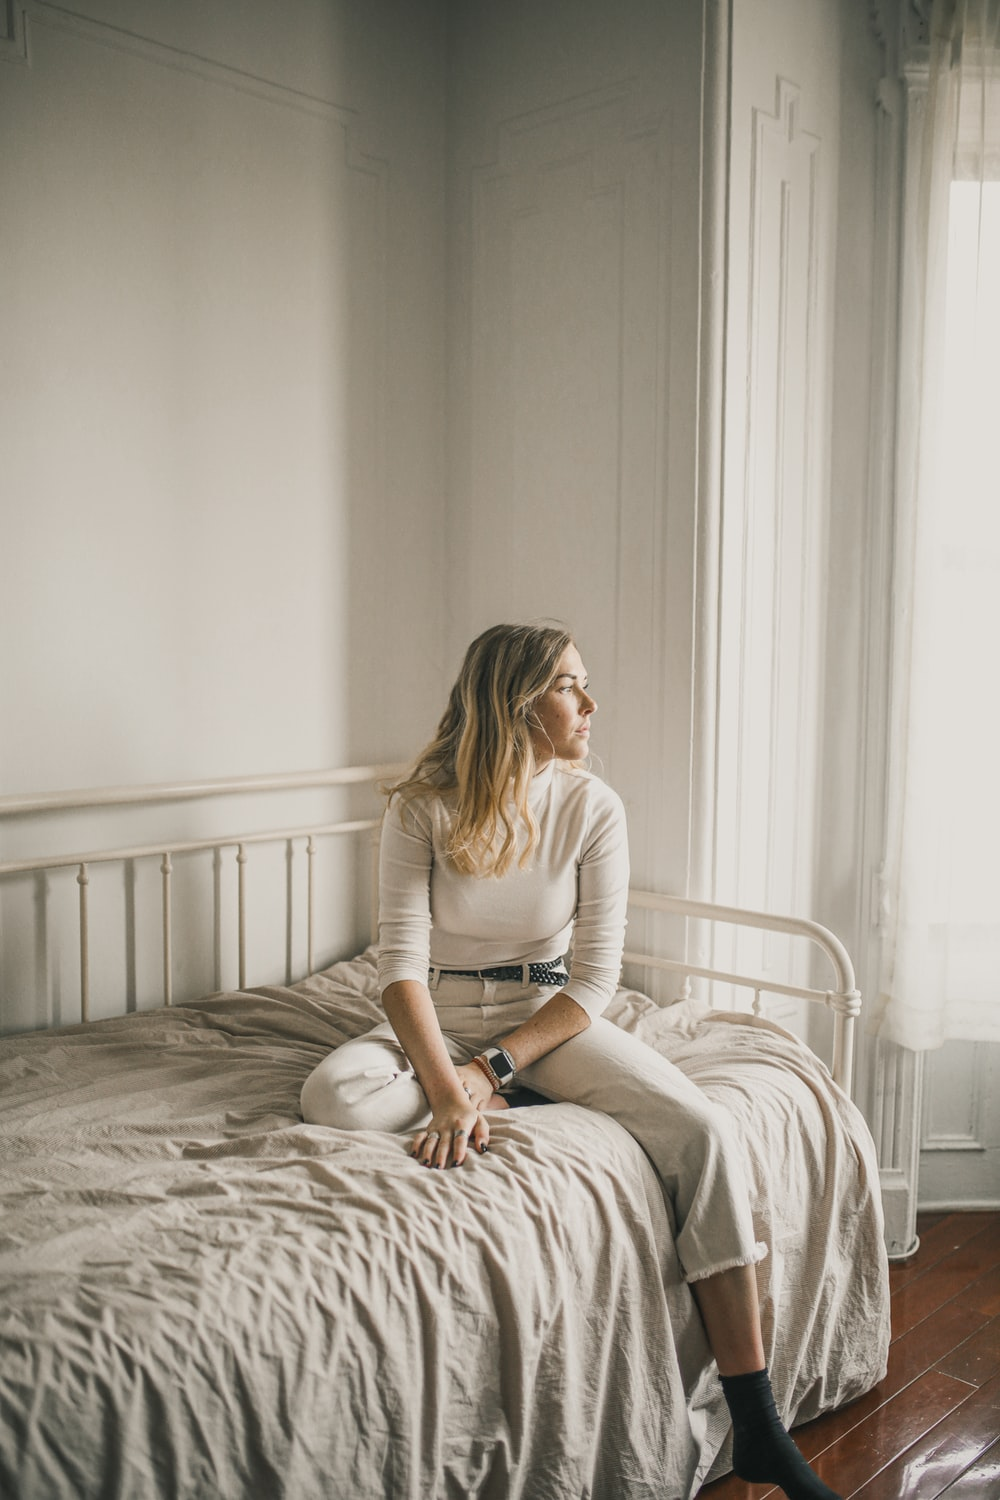 woman in white long sleeve shirt sitting on bed